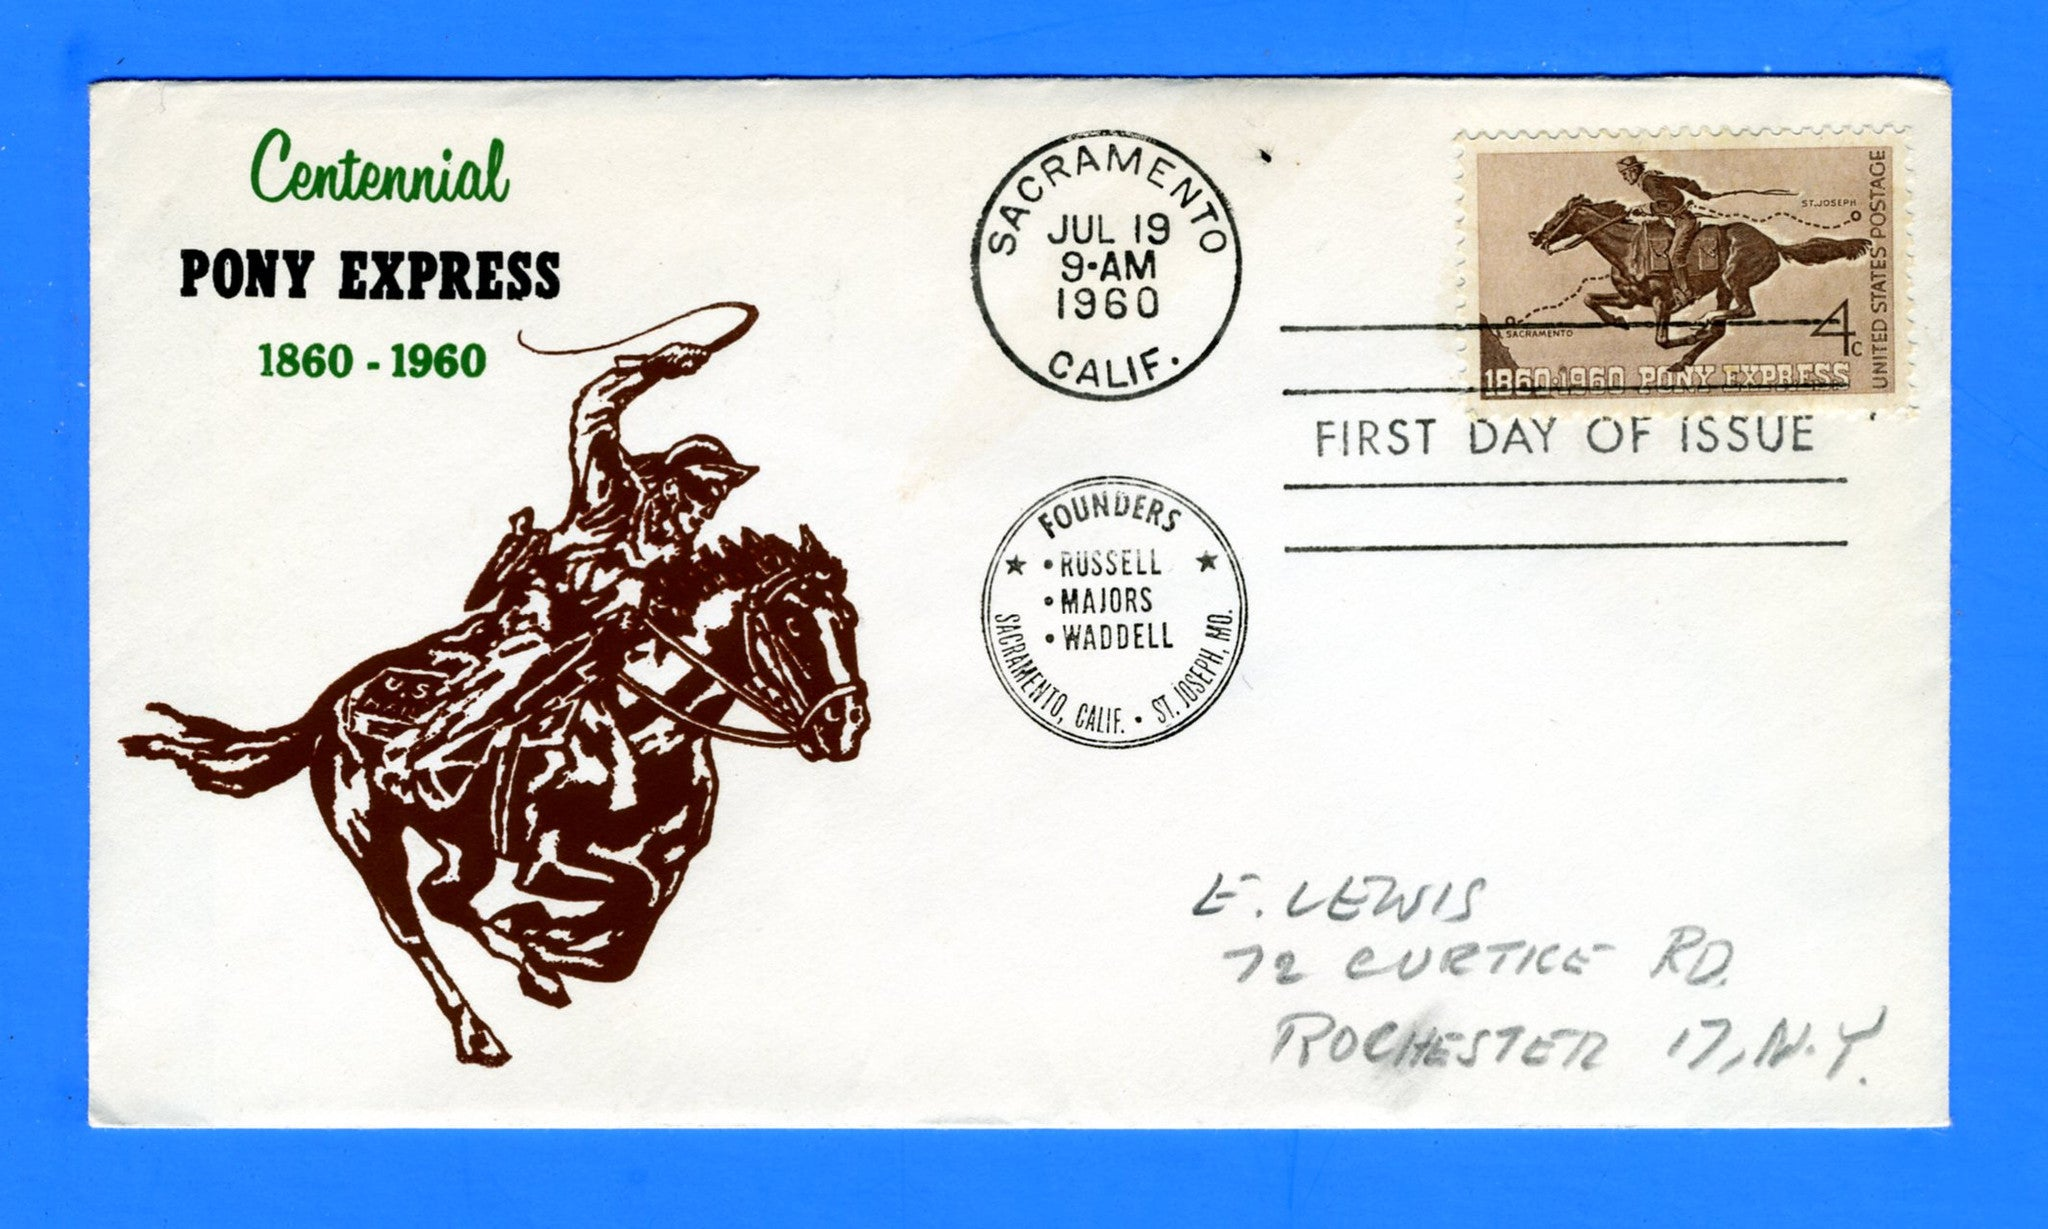 Scott 1154 4c Pony Express Silk Screen First Day Cover by Eric Lewis - Very Rare - Only Eleven Known Copies